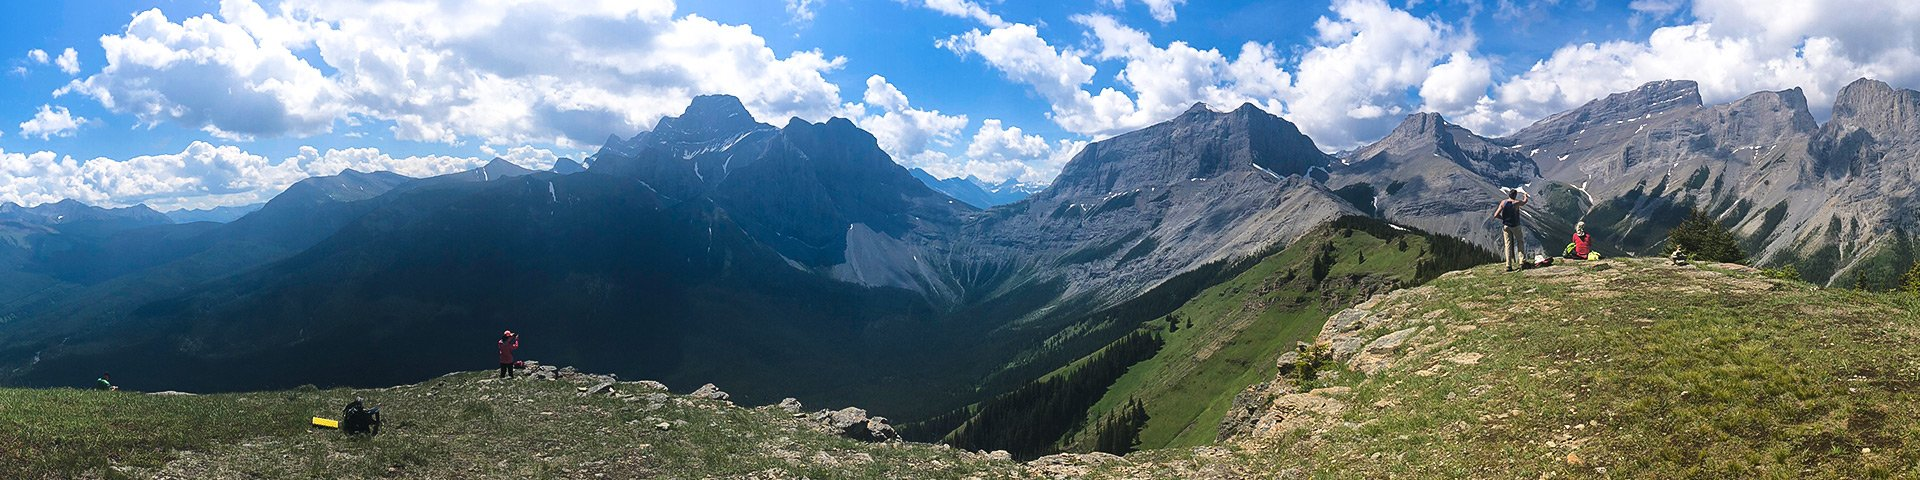 Best family-friendly hikes from Canmore, Alberta, Canada